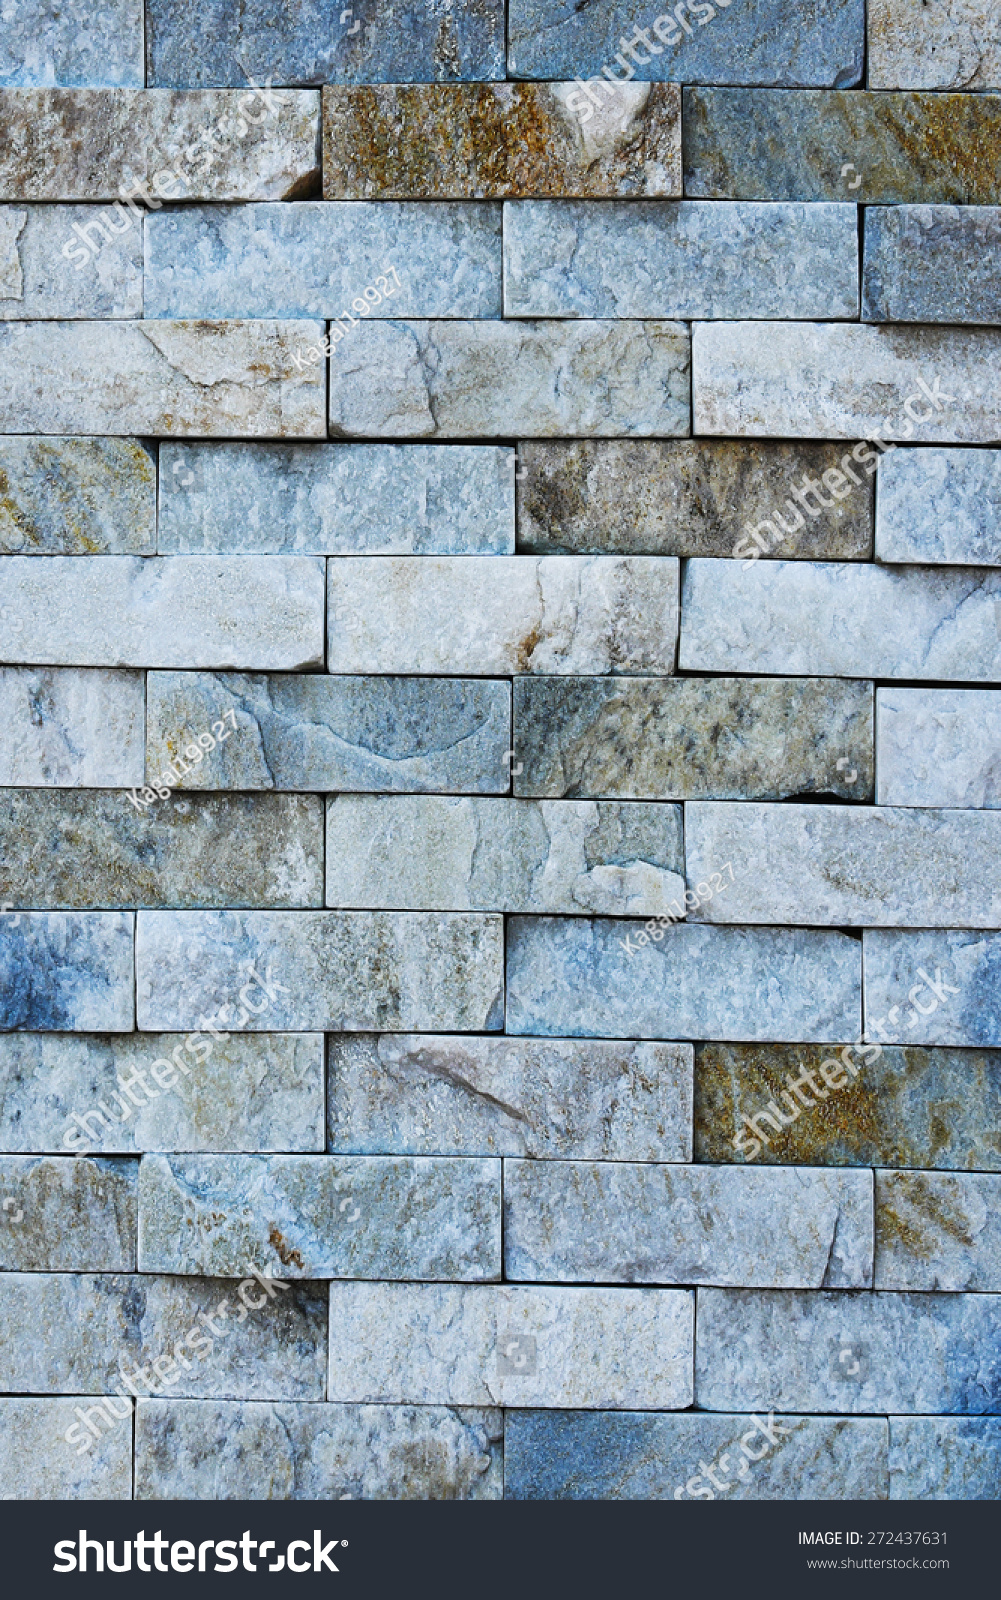 Sample Ceramic Tiles Texture Design Wall Stock Photo (Royalty Free ...